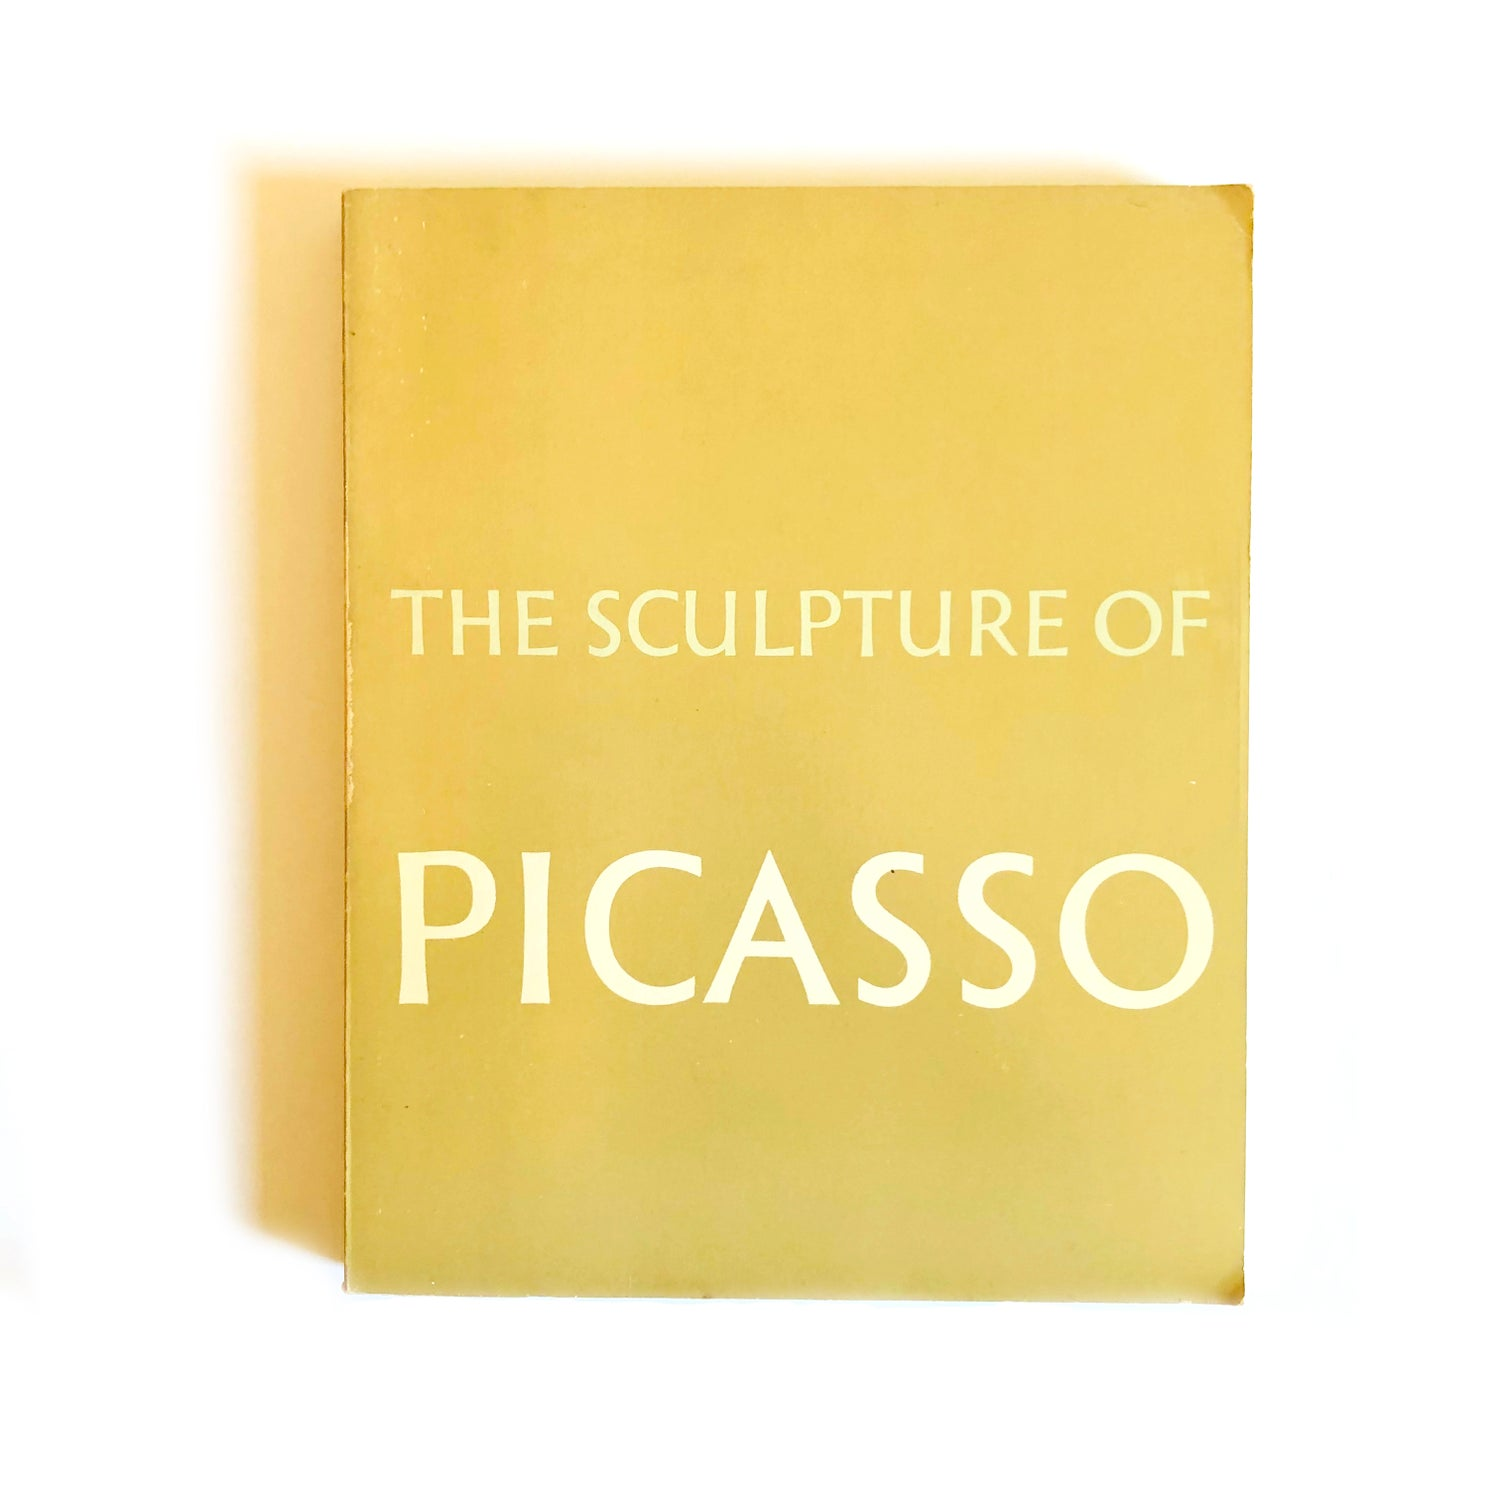 Image of The Sculpture of Picasso by Roland Penrose, Alicia Legg